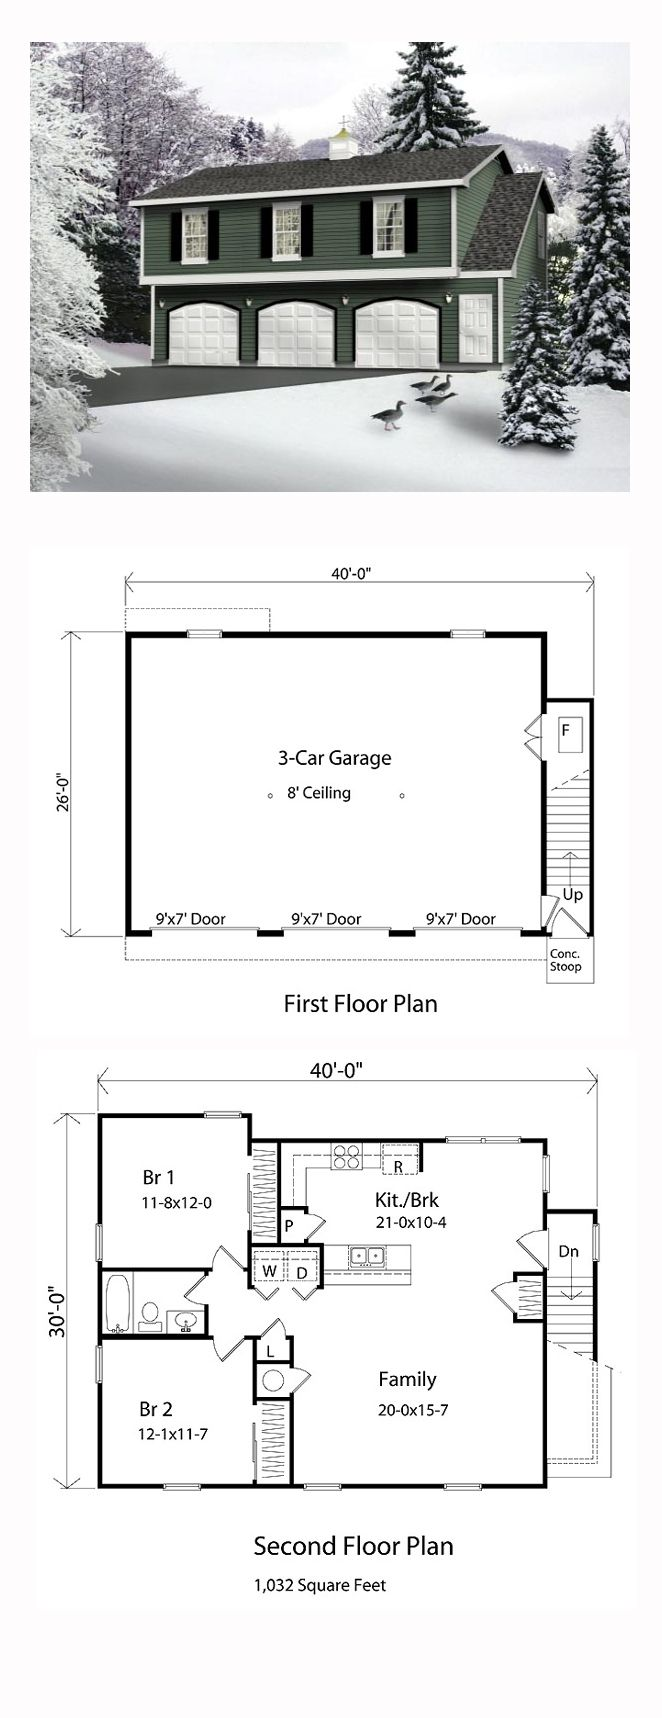 Garage apartment plan 49029 total living area 1032 sq ft 2 bedrooms and 1 bathroom the upper level apartment has everything for comfortable living